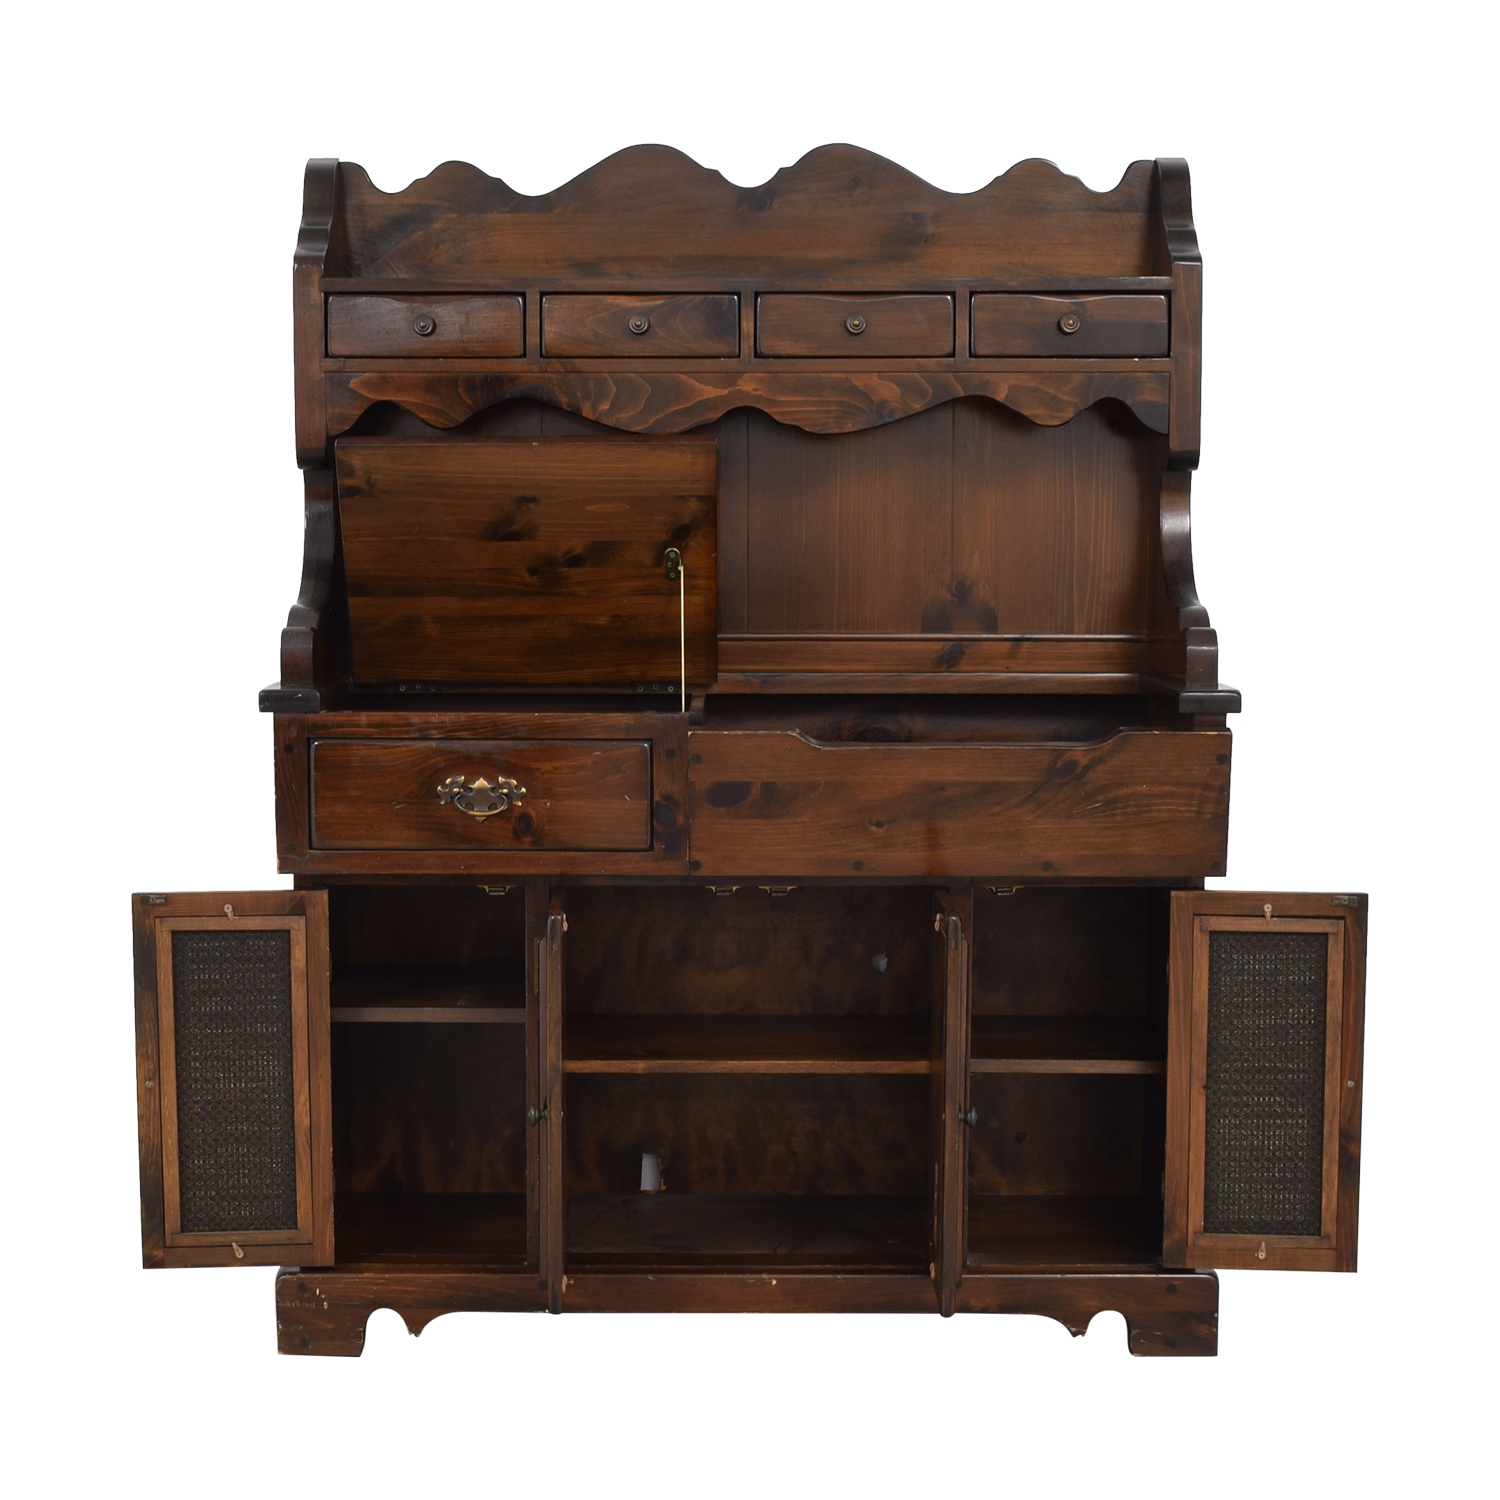 Bennington Pine Bennington Pine Dry Sink Entertainment Cabinet for sale